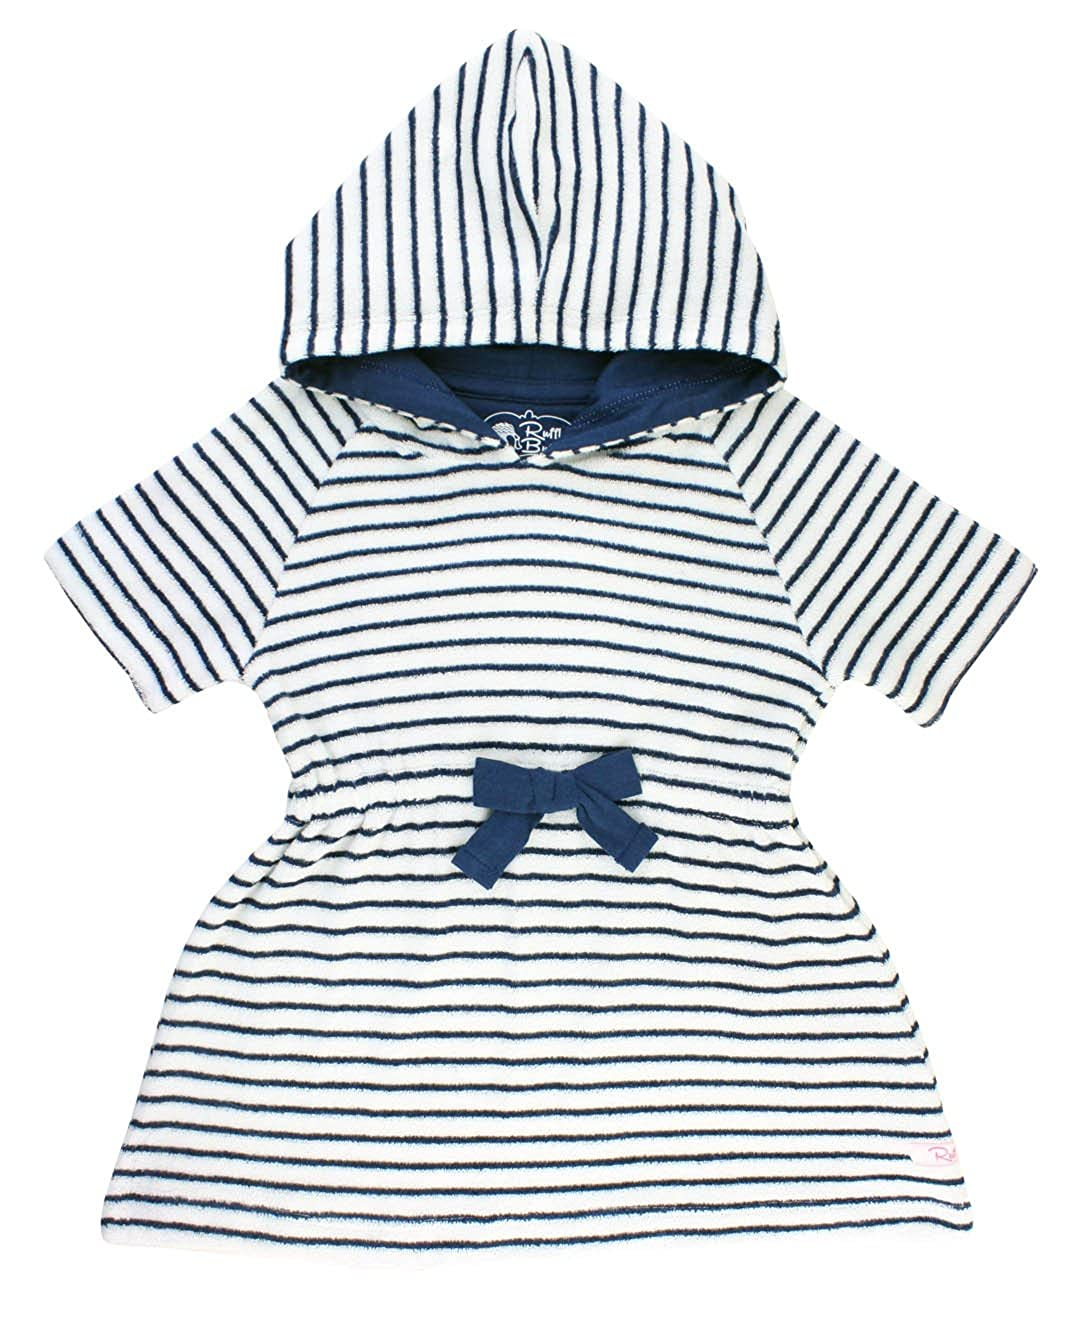 fd58ea104c343 Our customer favorite girl\'s terry cover-up is back and in the cutest  nautical stripes! The soft terry fabric and cozy hood will keep your little  one warm ...